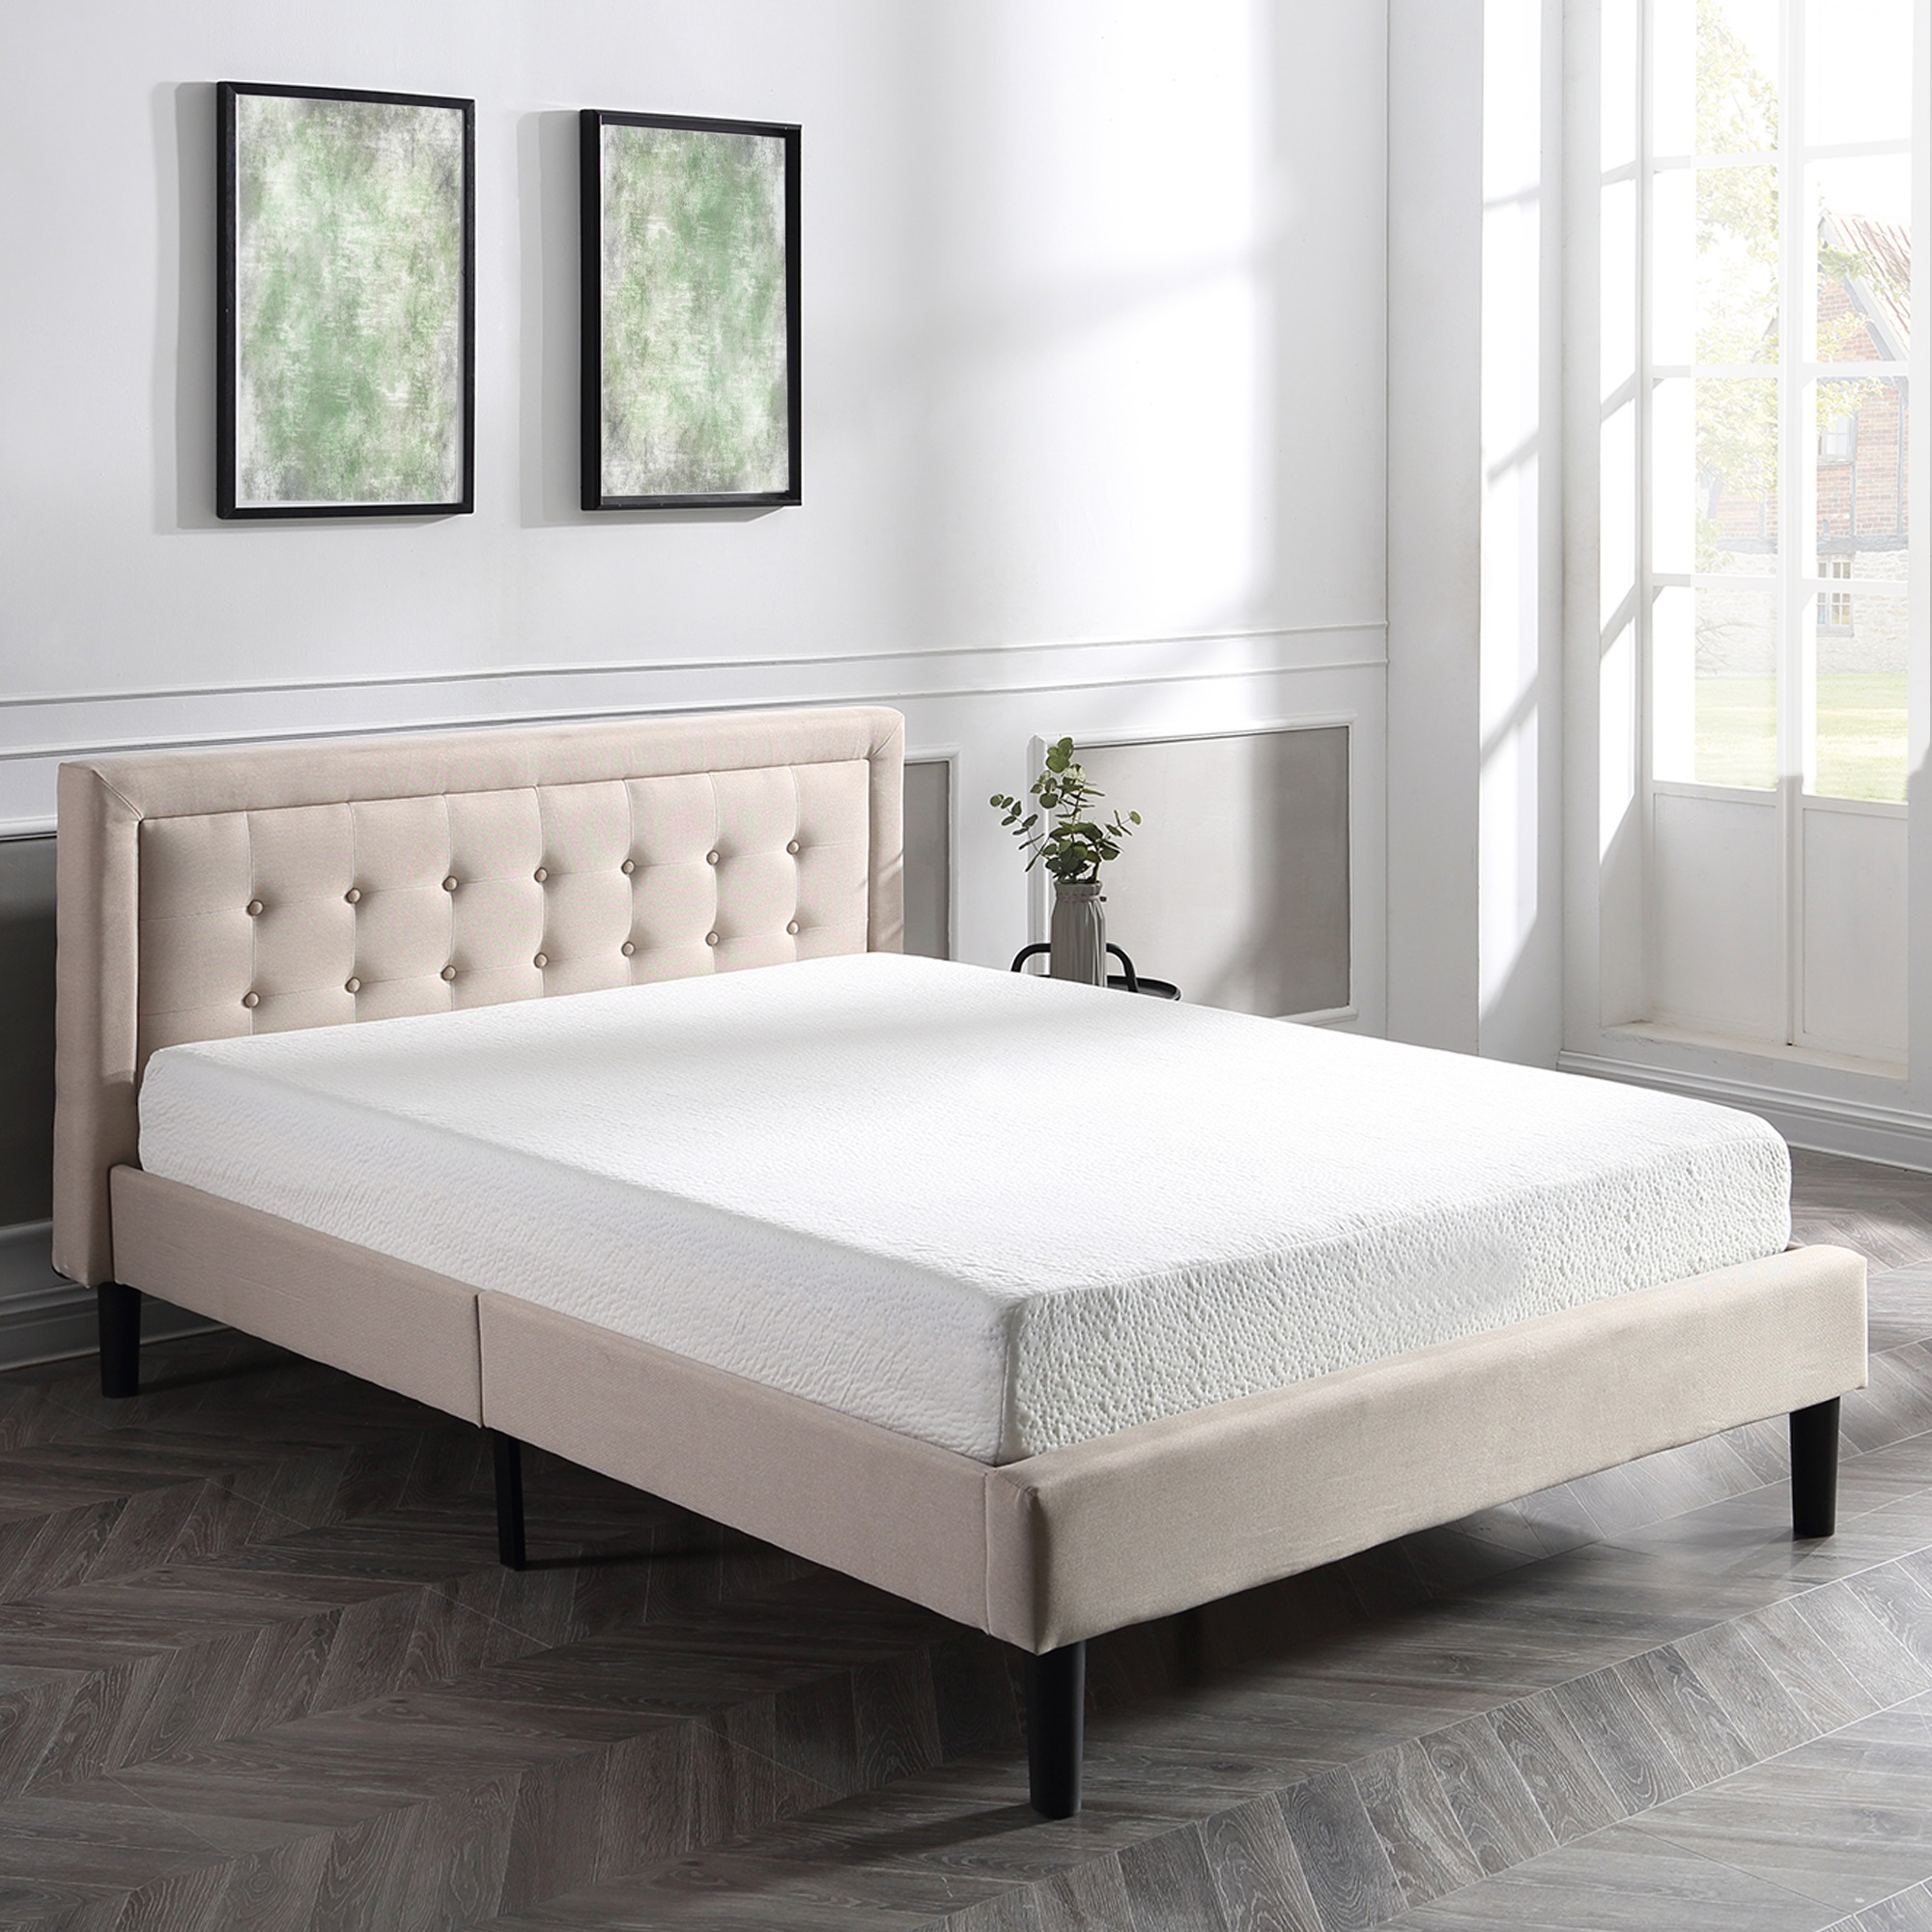 Modern Sleep Cool Gel Ventilated Gel Memory Foam 8-Inch Mattress, Multiple Sizes